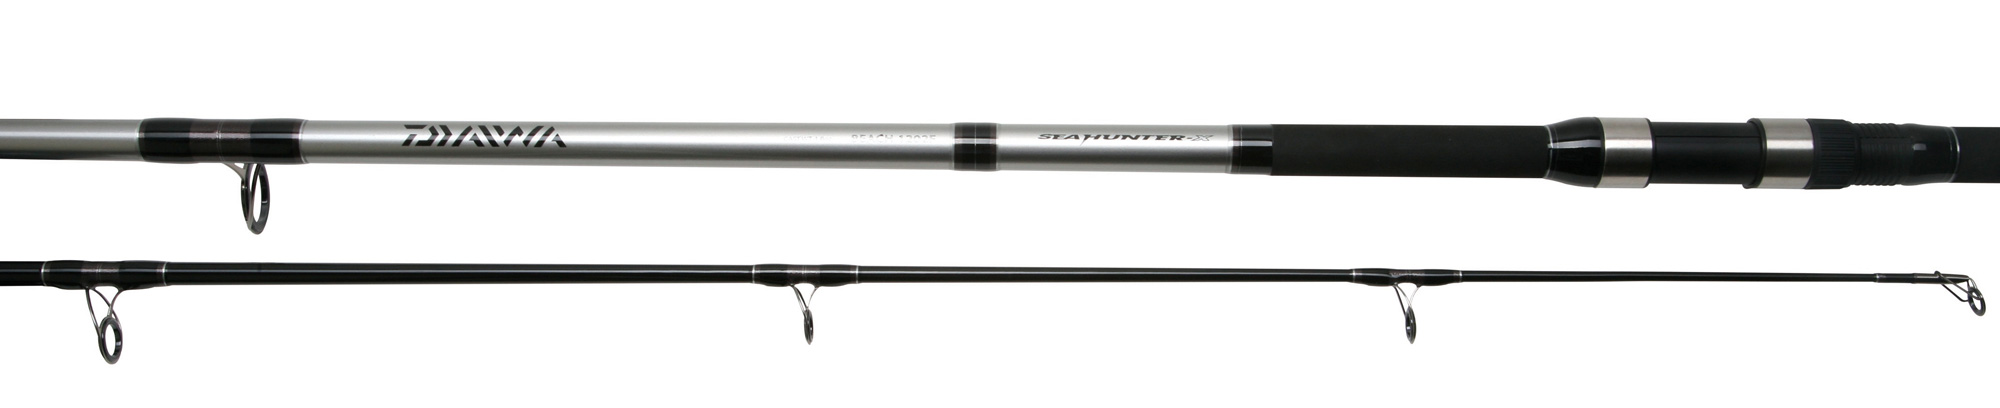 NEW DAIWA SEA HUNTER X SURF ROD 12' 2PC 4-8OZ Enlarged Preview